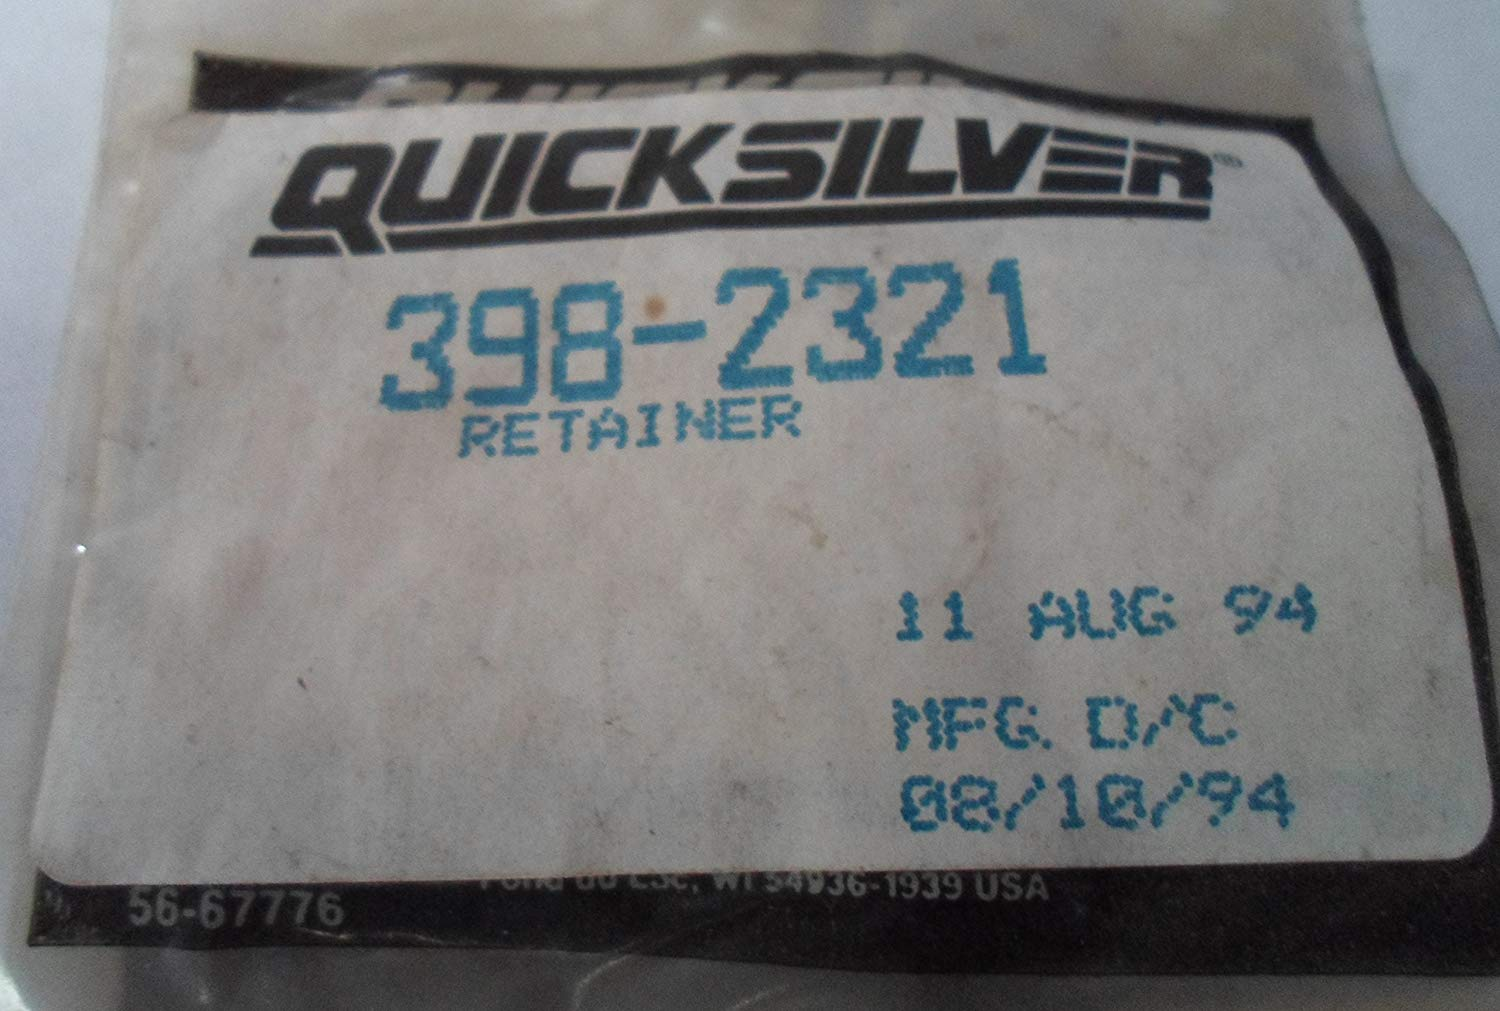 Quicksilver / Mercury 398-2321 Retainer